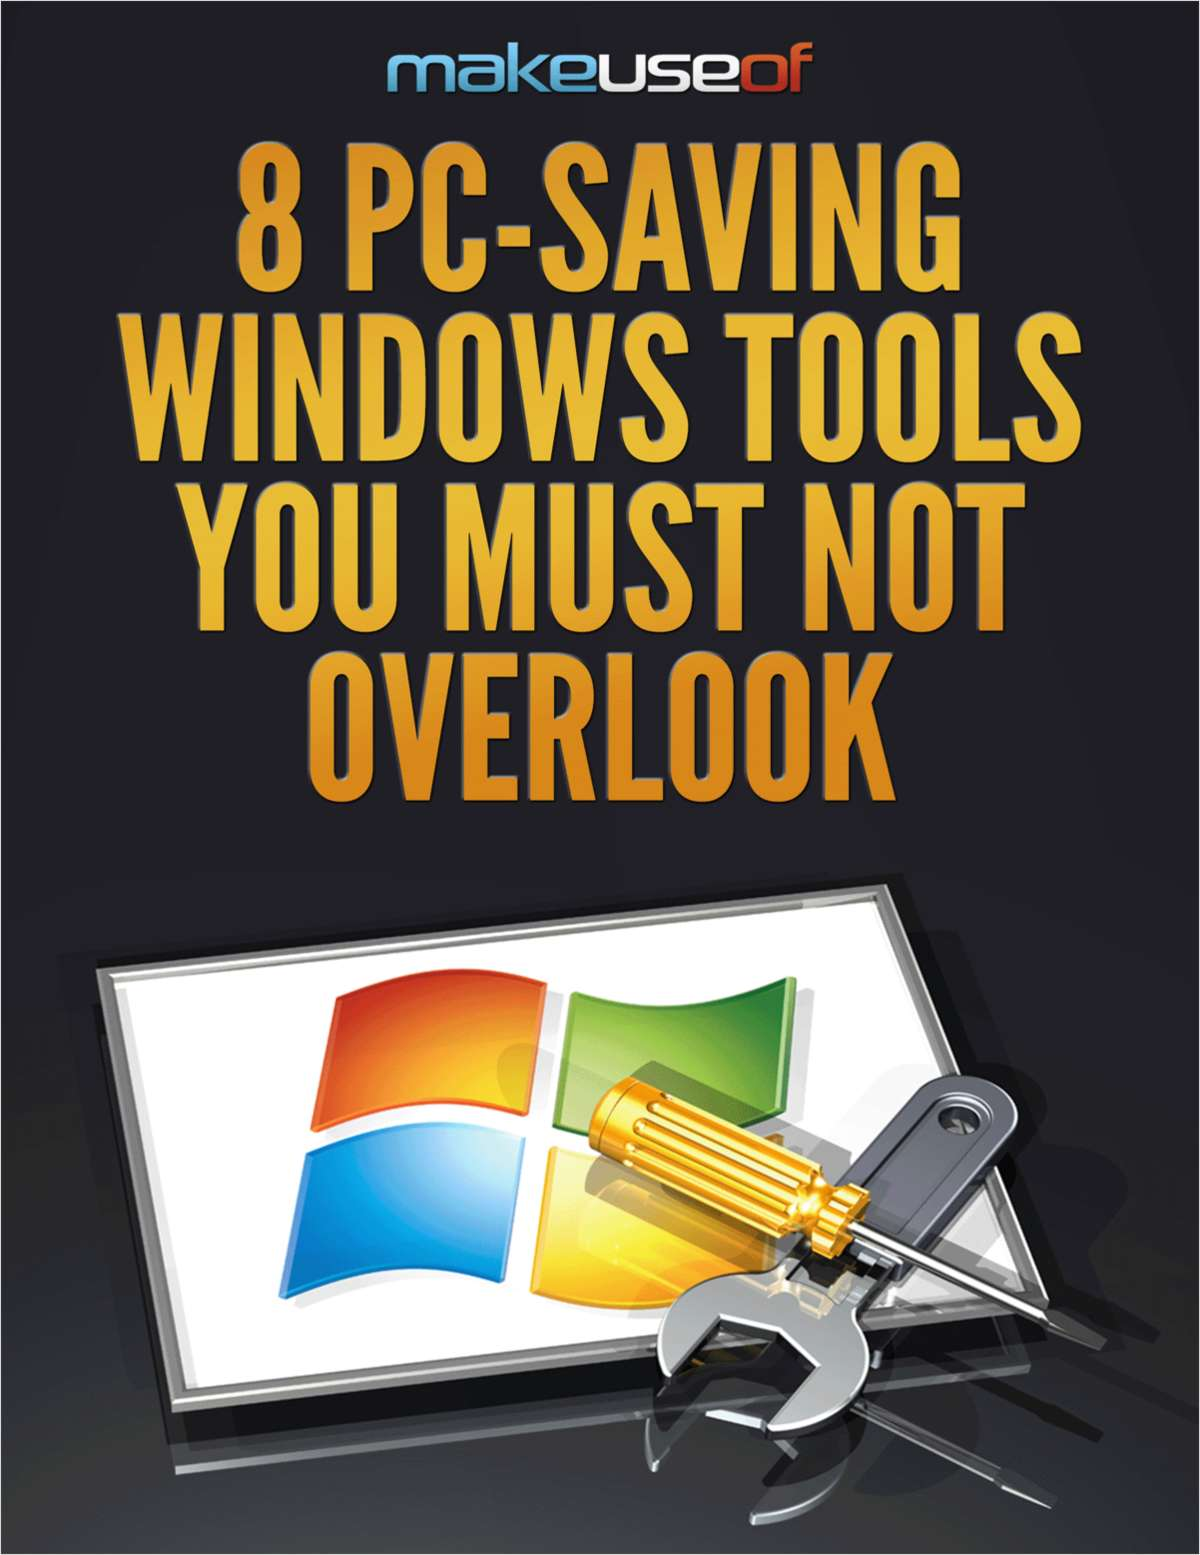 8 PC-Saving Windows Tools You Must Not Overlook